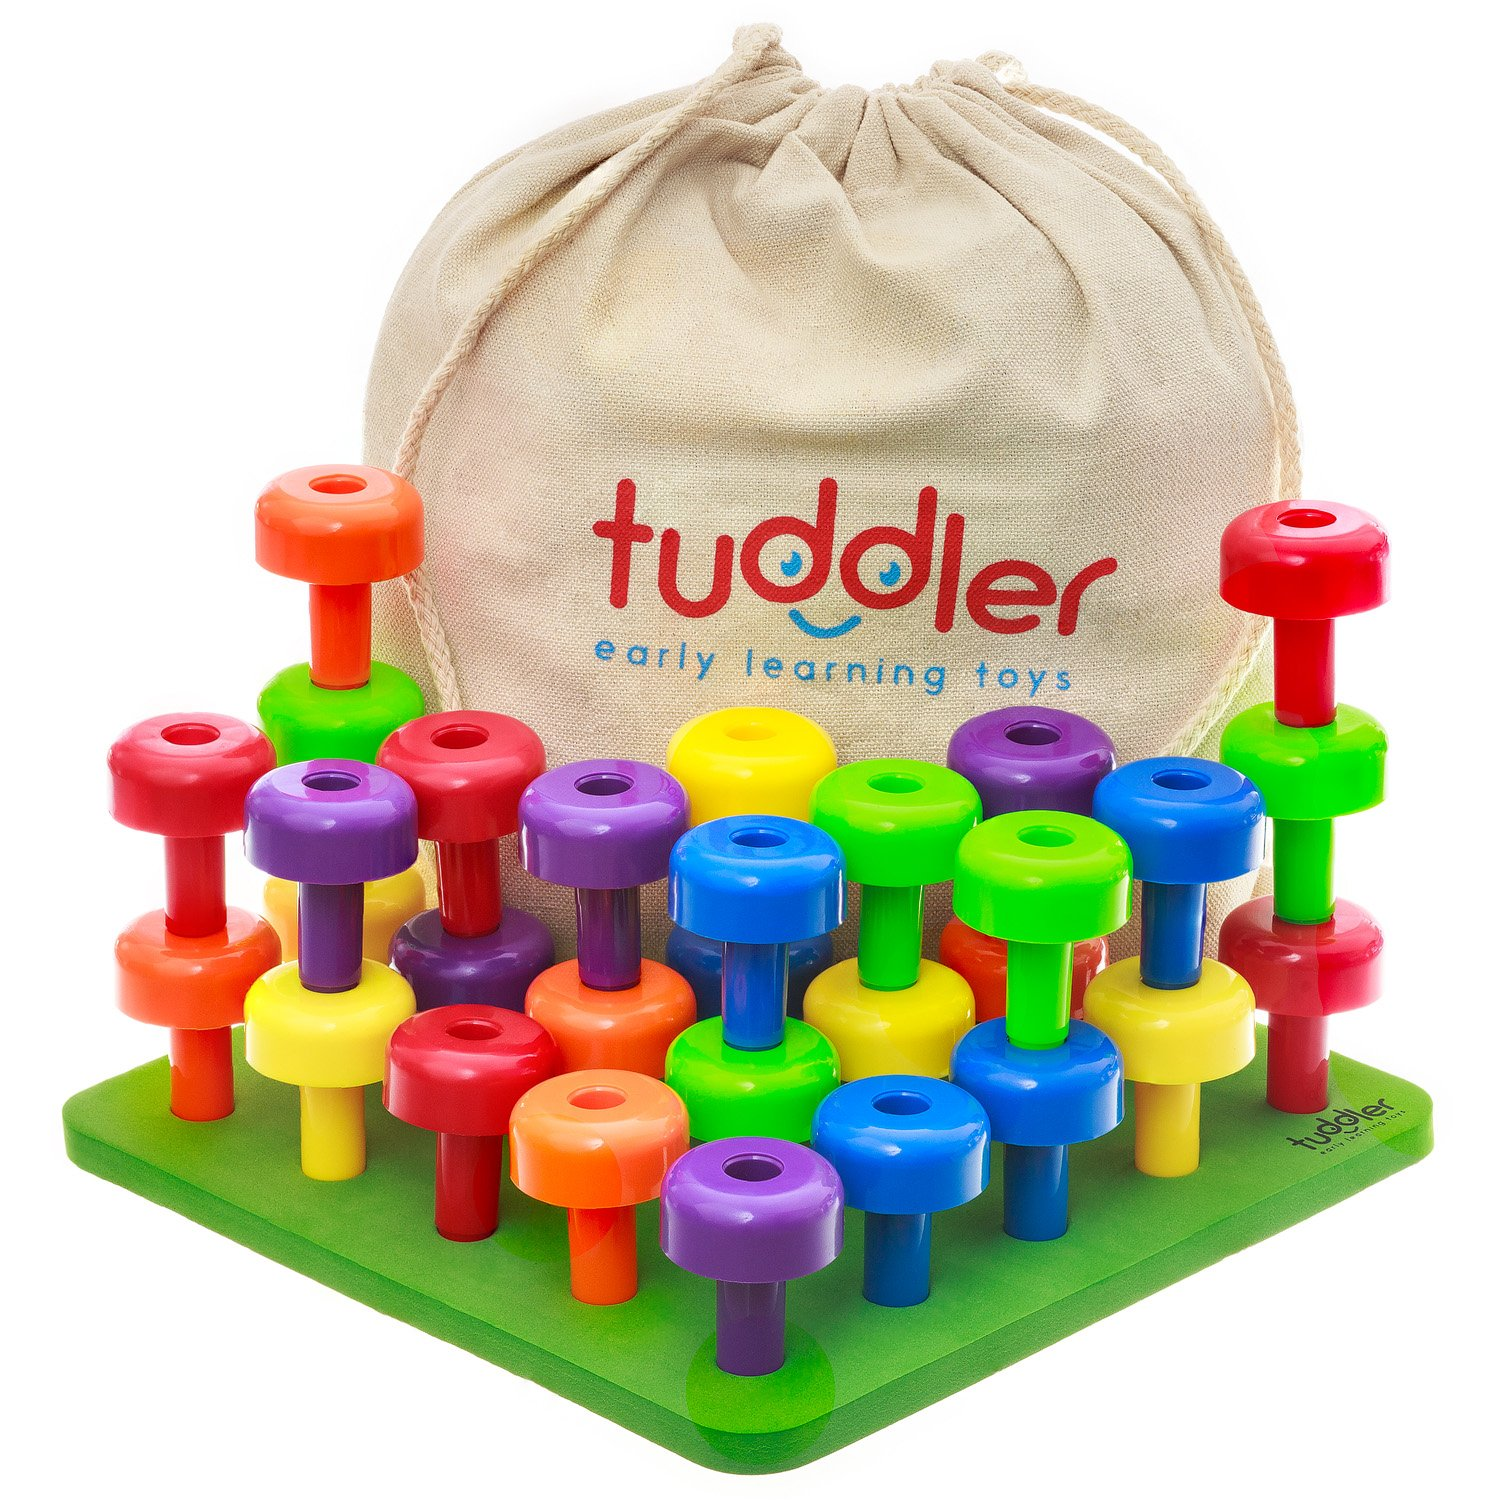 Tuddler Brightly Colored Stackable Pegs and Peg Board Set / Montessori Educational Toy for Toddlers and Kids + Pattern Card + Drawstring Backpack for portability and neat storage